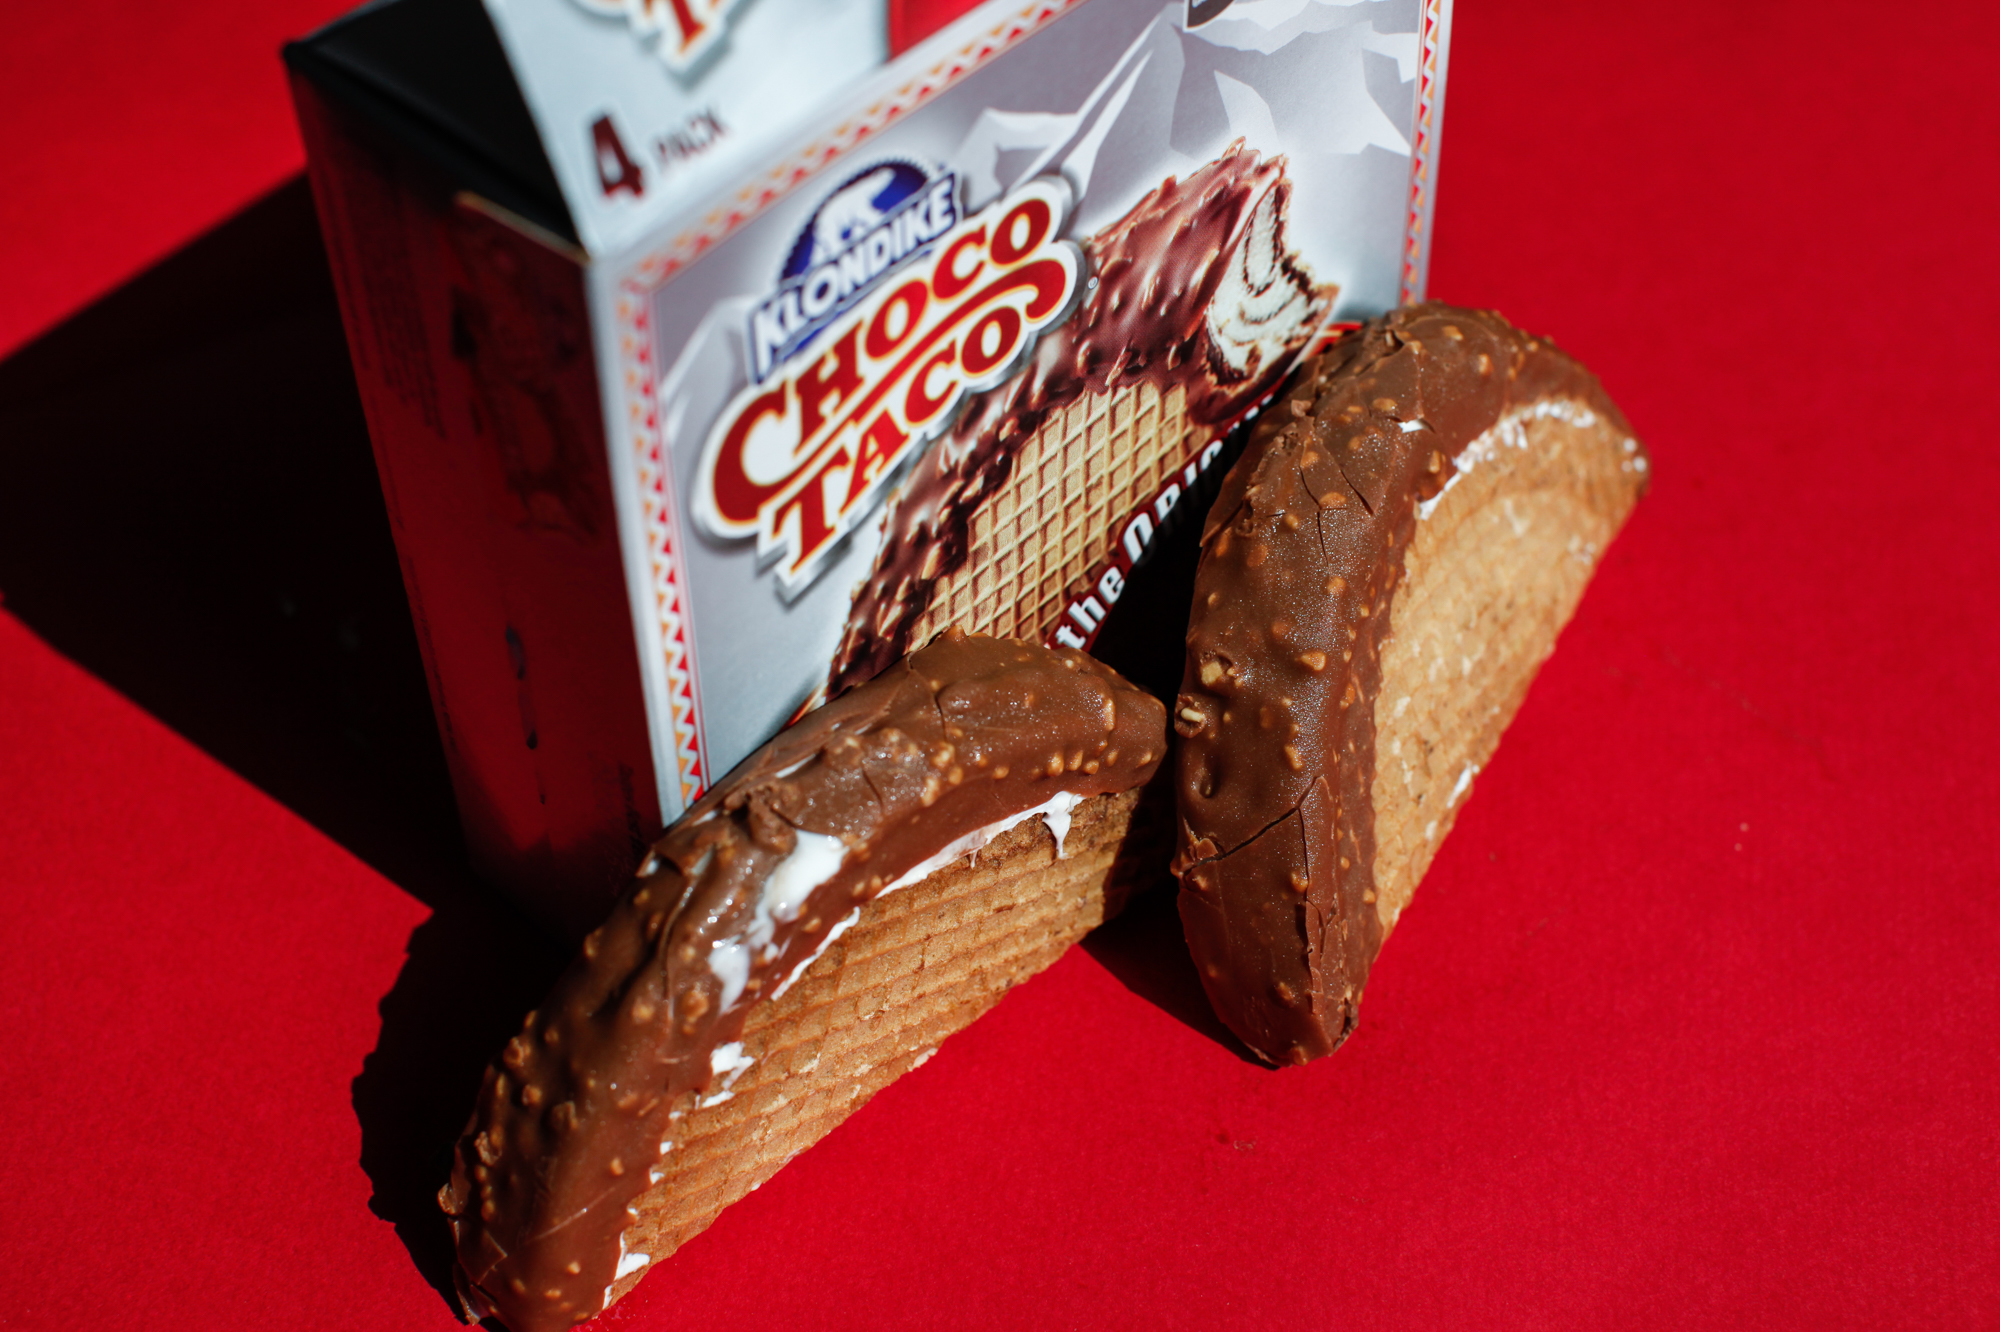 Though eating a Choco Taco doesn't typically remind one of eating Mexican food, the idea was tapping into an '80s trend.